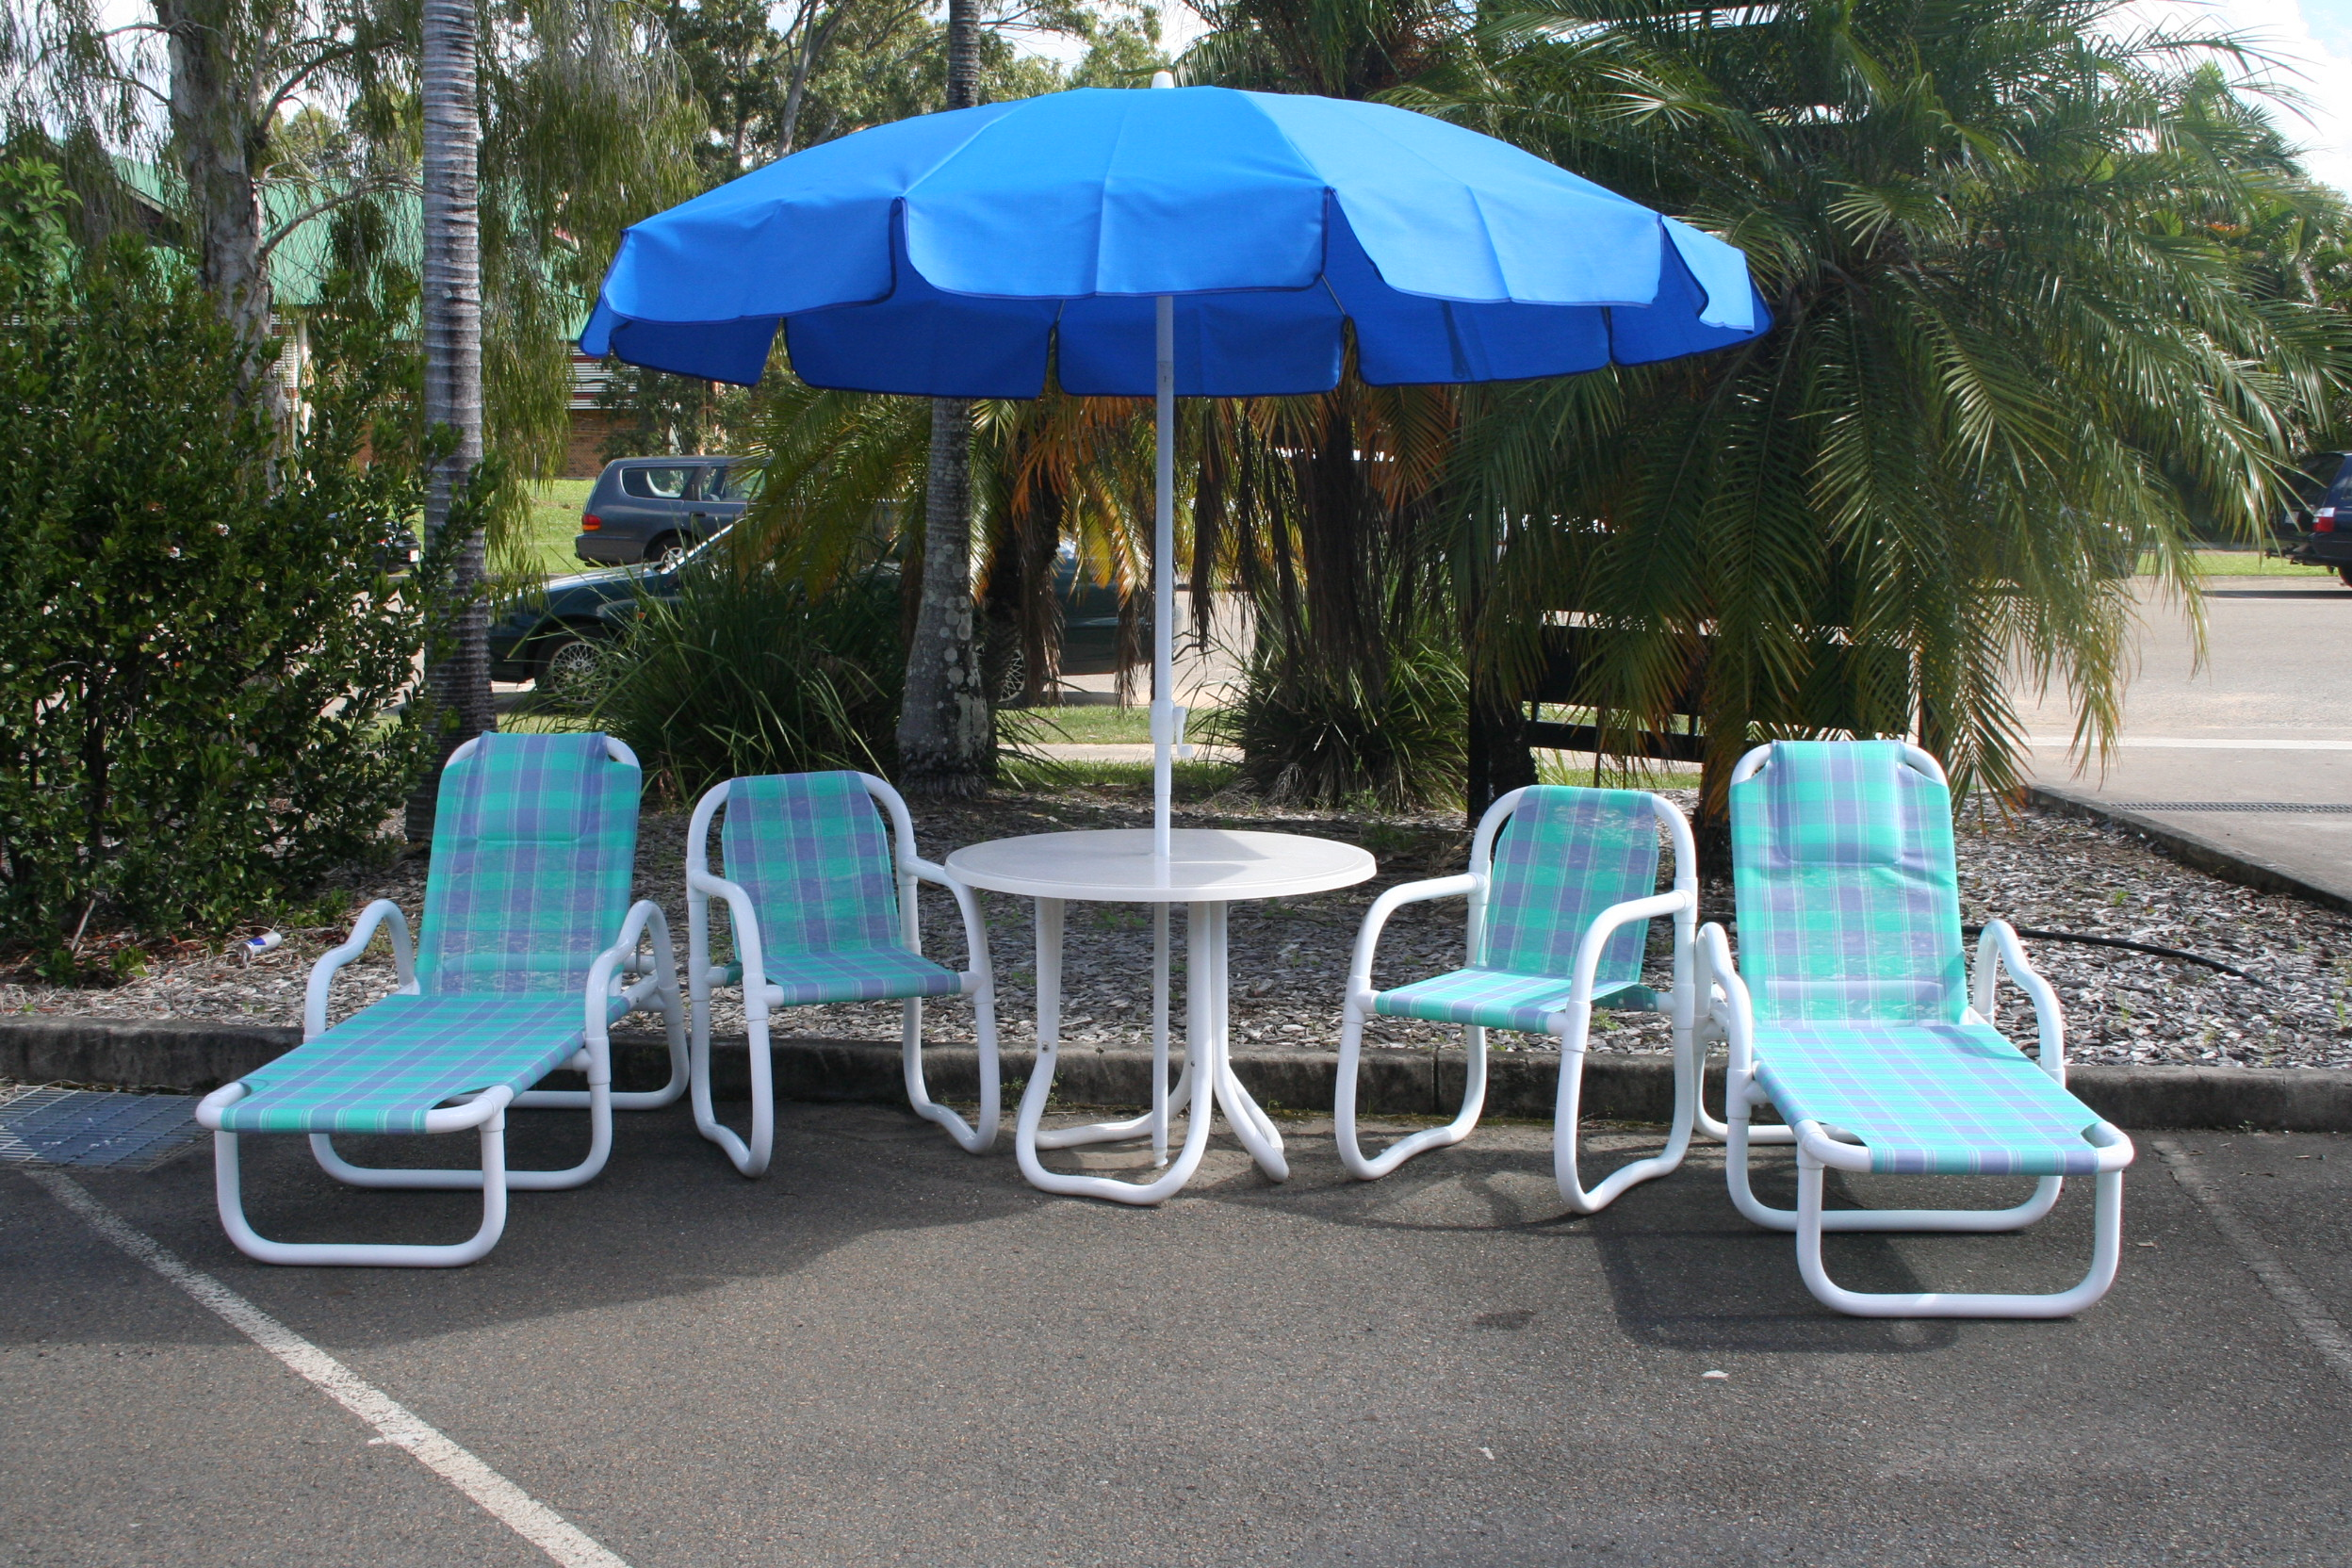 PVC settting with chairs, sun lounges and umbrella